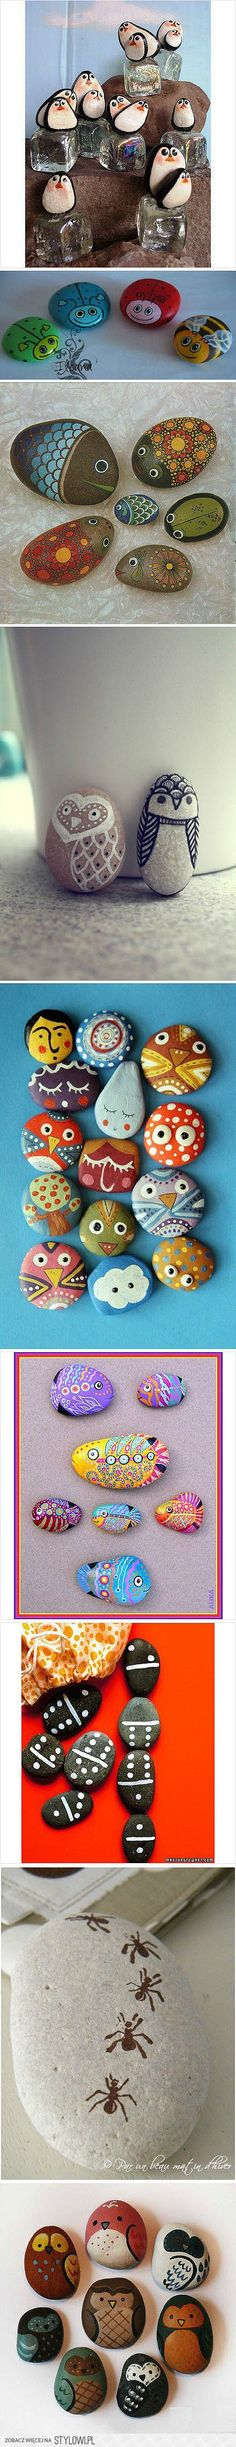 R is for ROCK.PEBBLE ART or ROCK ART - Great and very inexpensive activity for kids - (Okay - these were obviously done by adults so I admit I'm going to join in the fun!) - Fun and Creative Rock Crafts, Crafts To Do, Crafts For Kids, Arts And Crafts, Stone Crafts, Beach Crafts, Pebble Painting, Pebble Art, Stone Painting